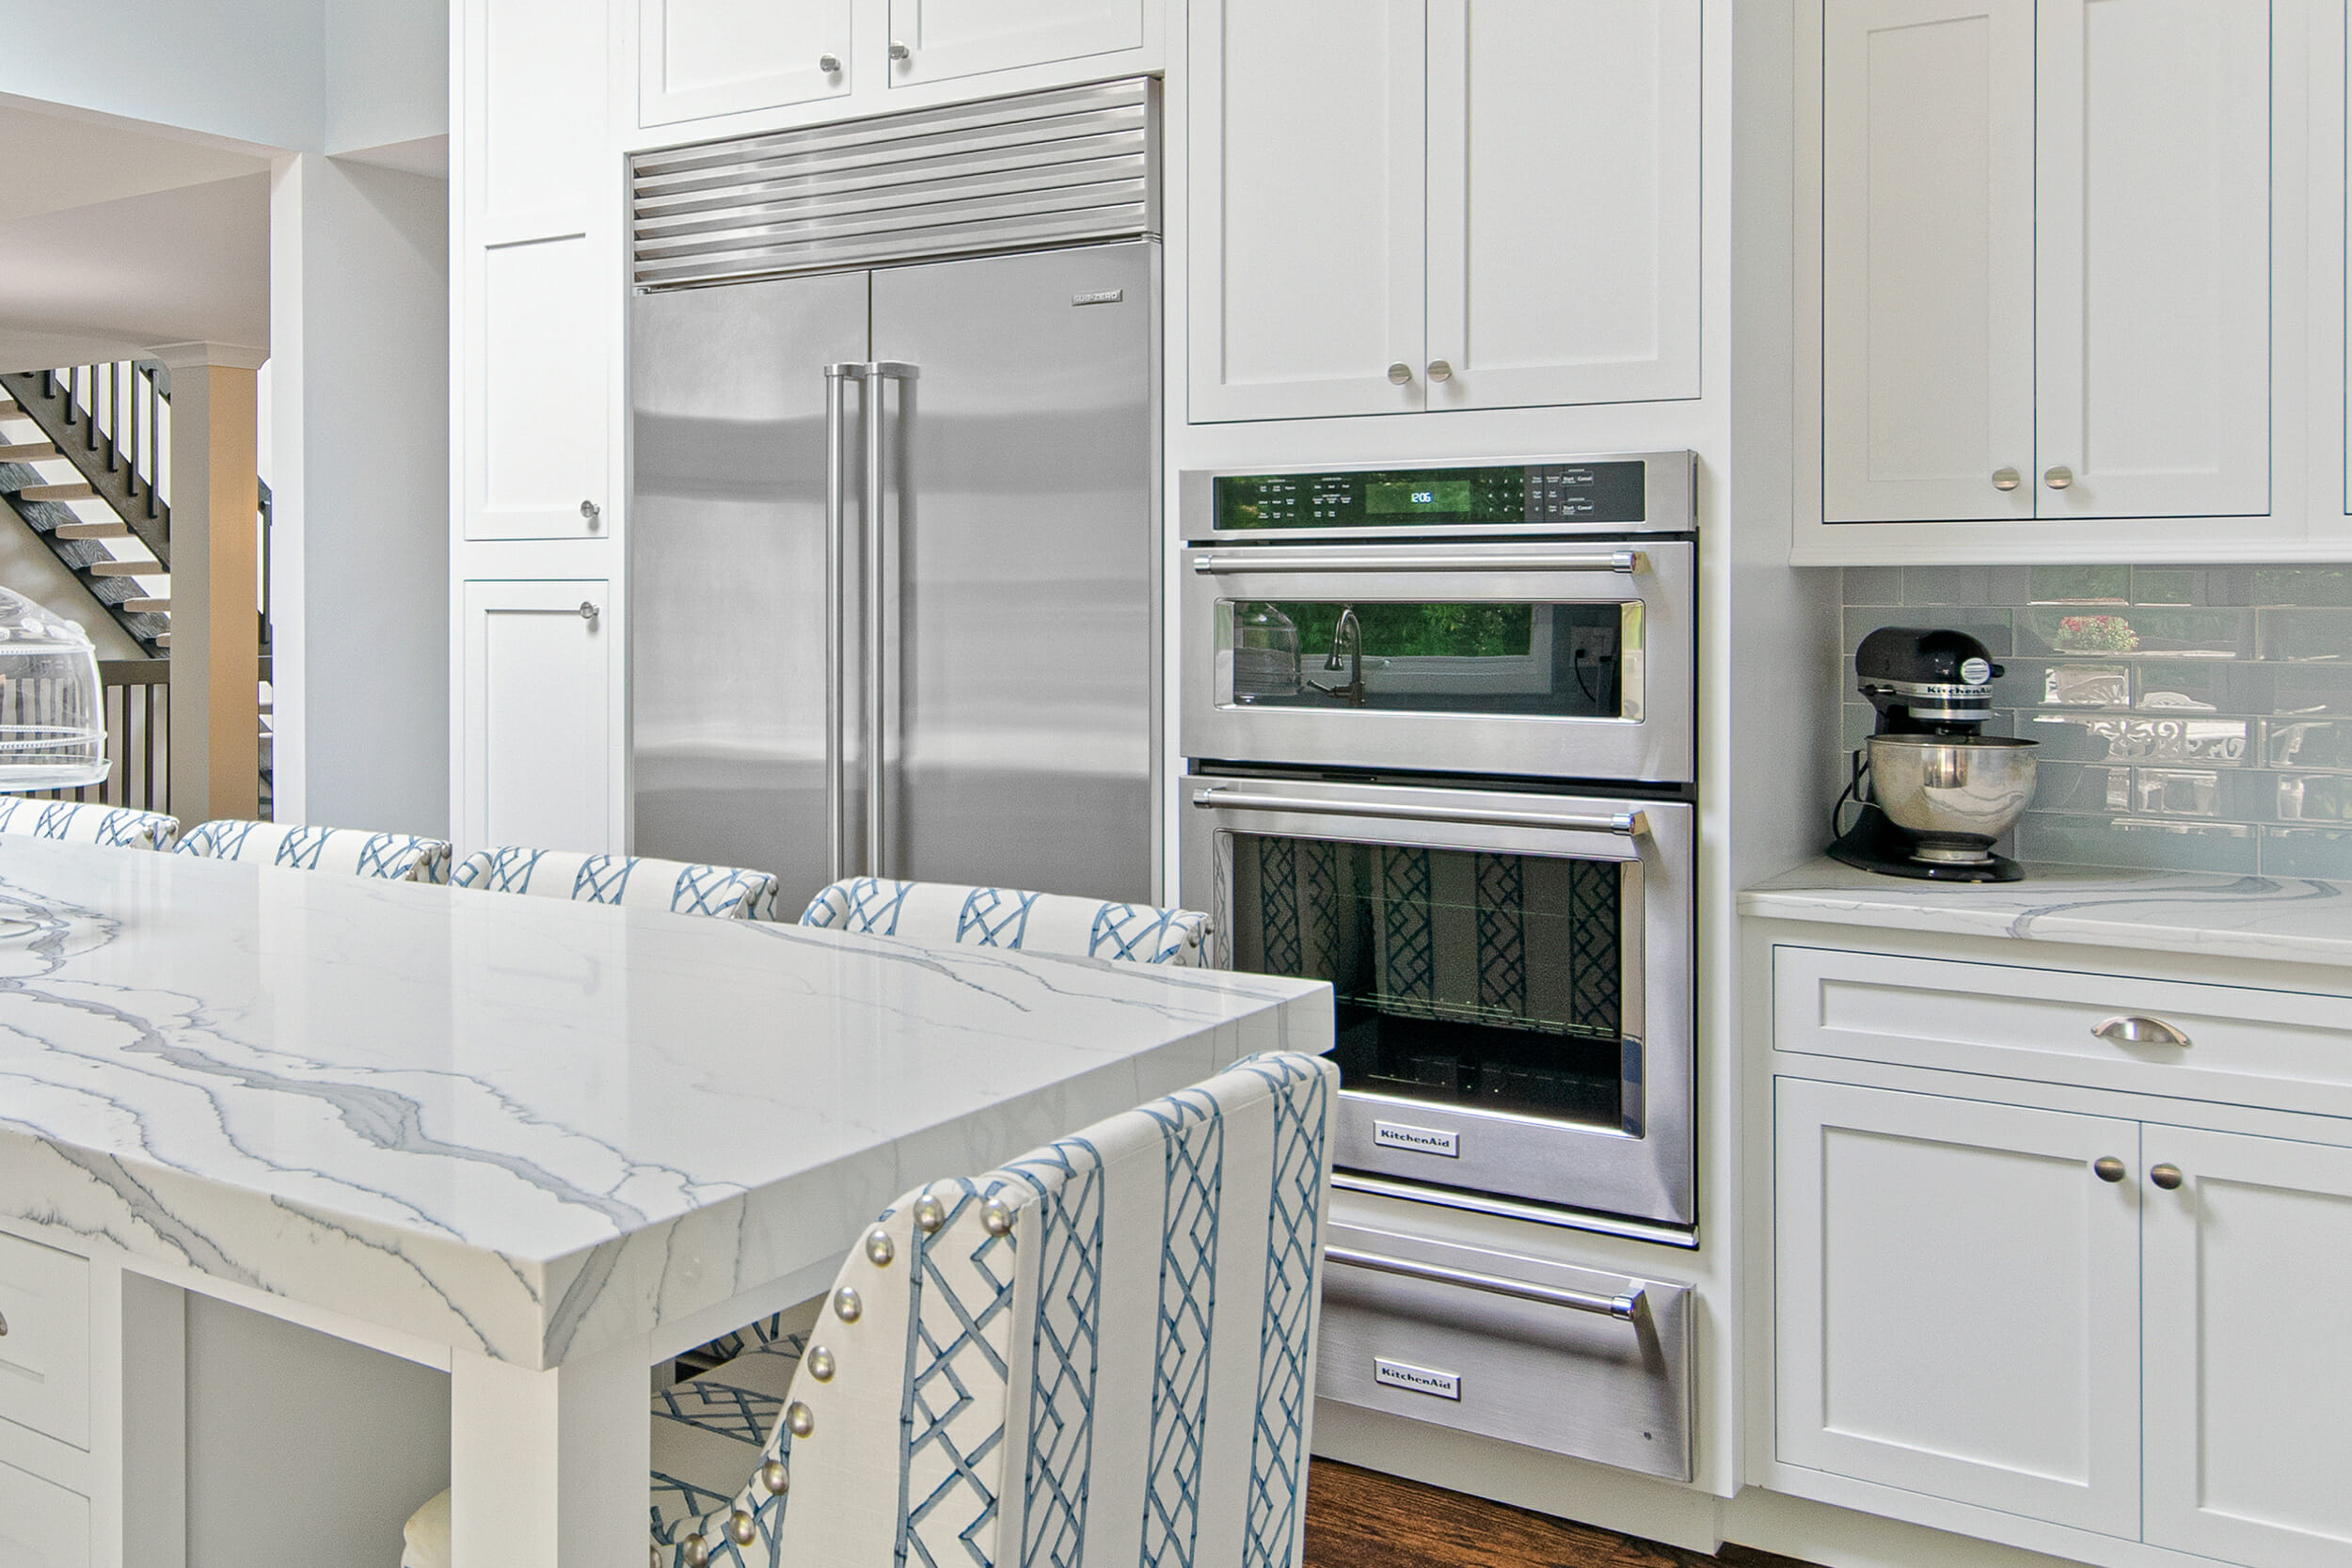 Kitchen Cabinets Kitchen Cabinetry Nj Kitchens And Baths